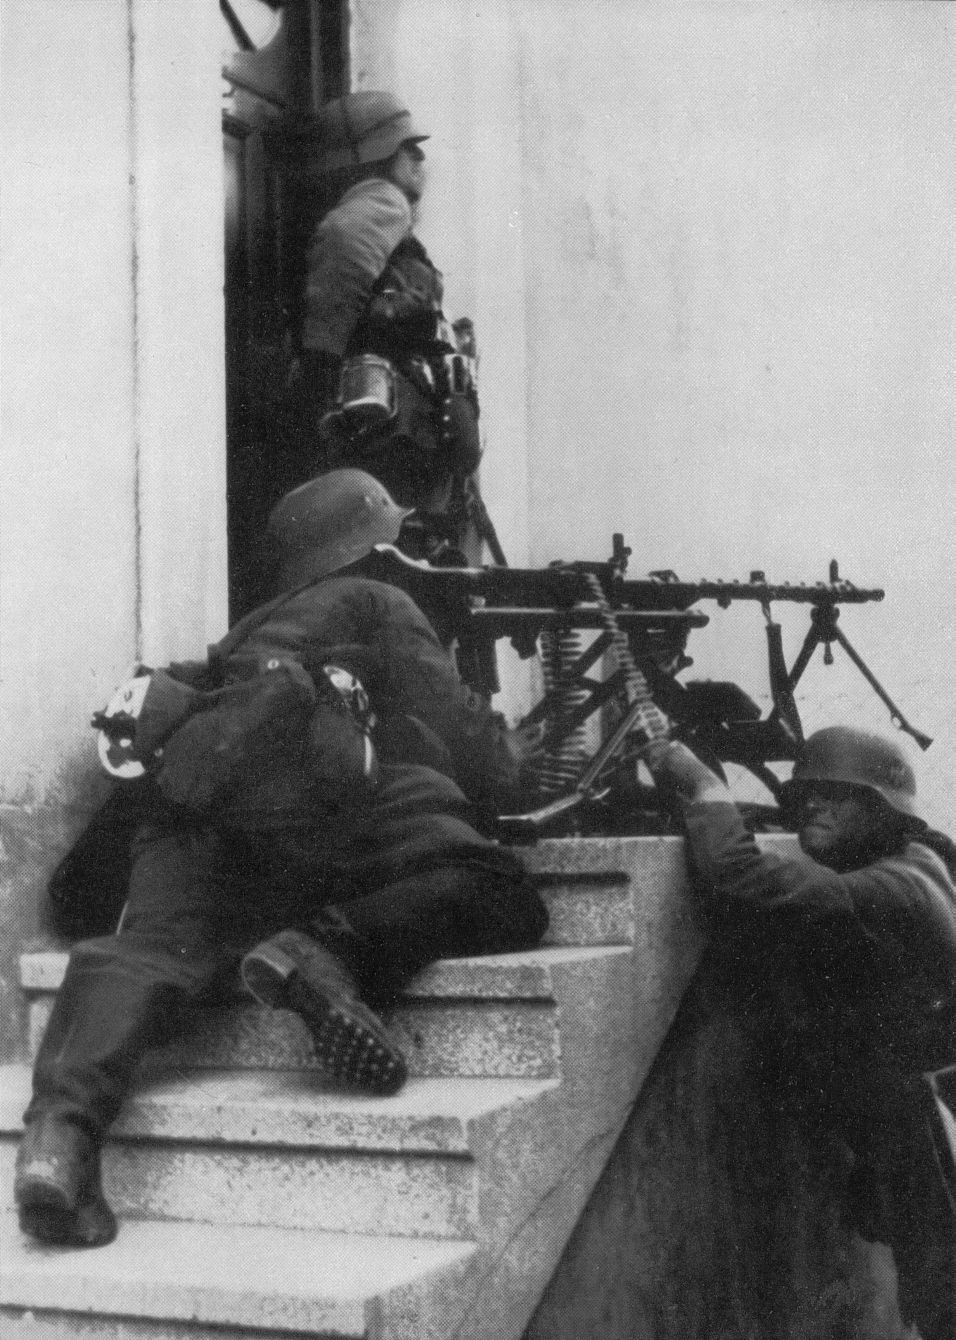 Mg34 street fight